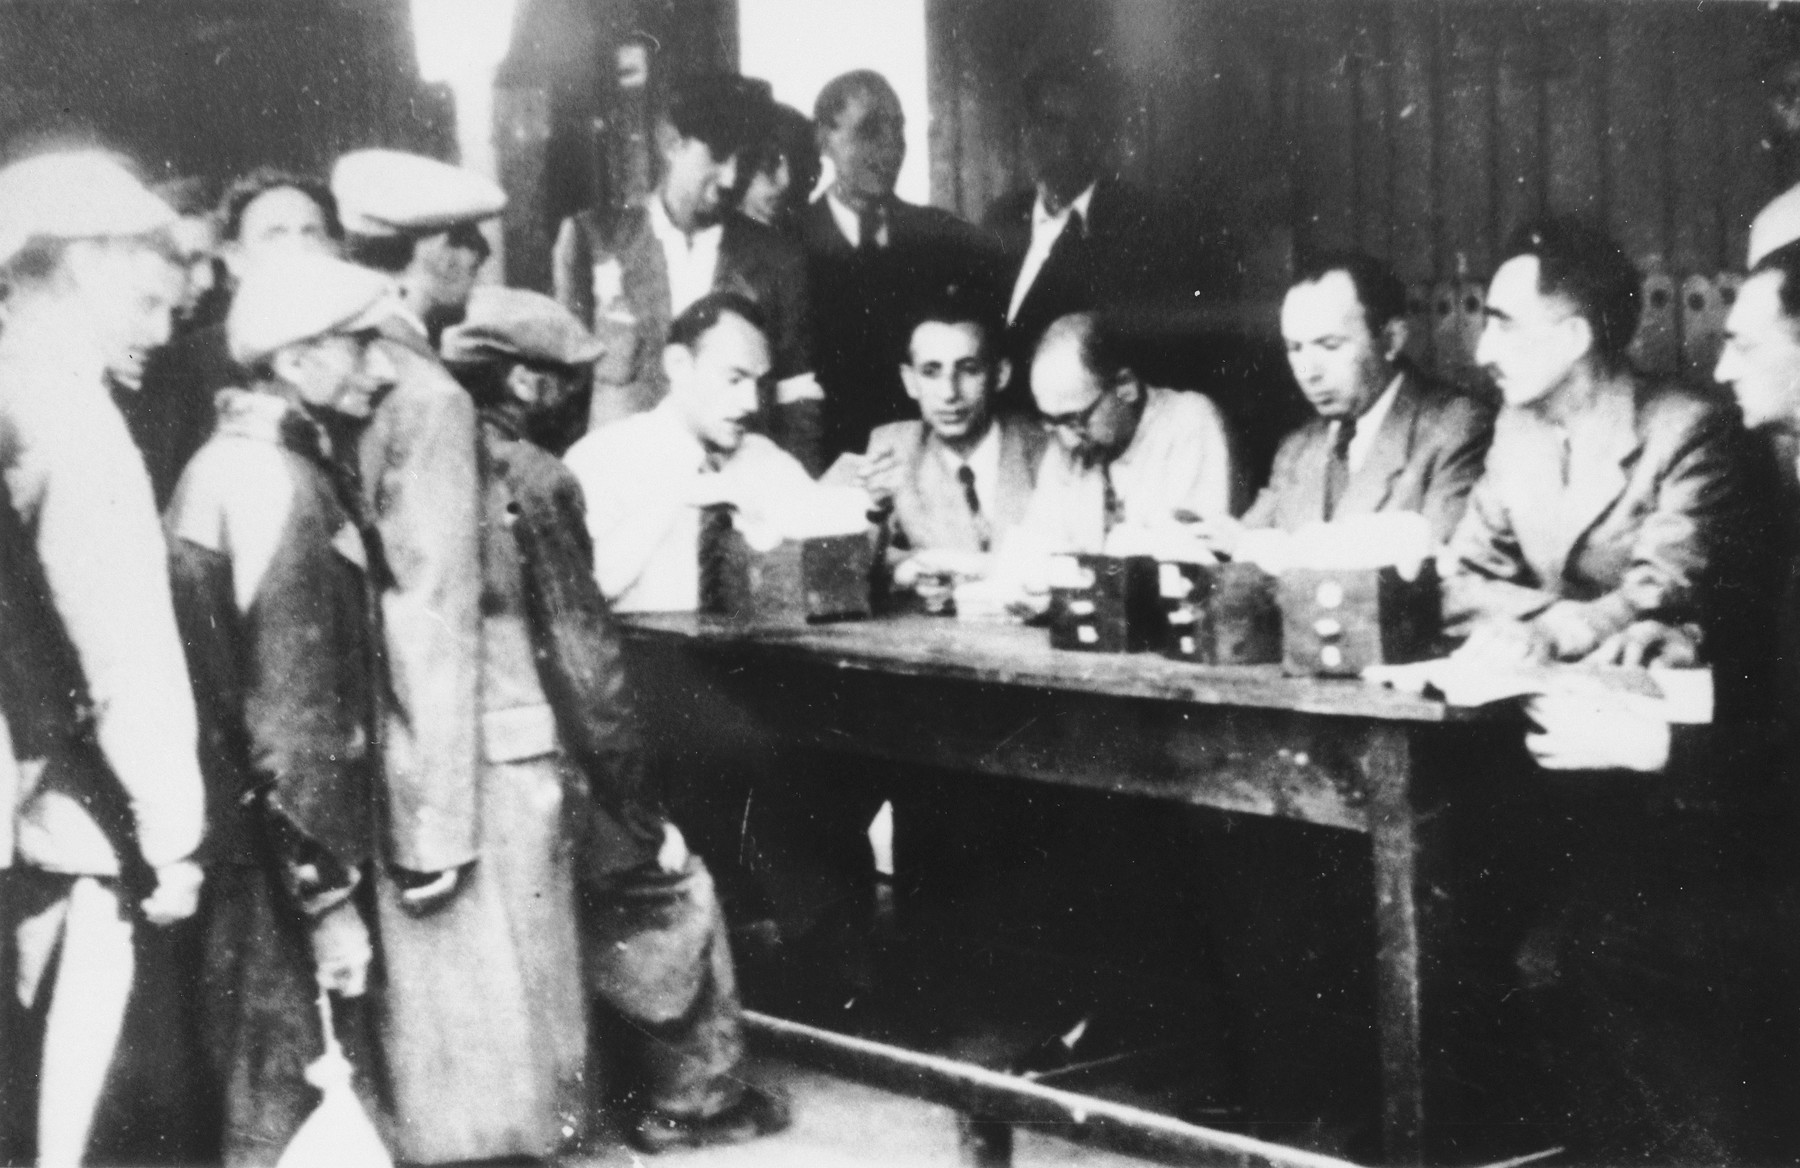 Jews wait in line to register in an unidentified ghetto.